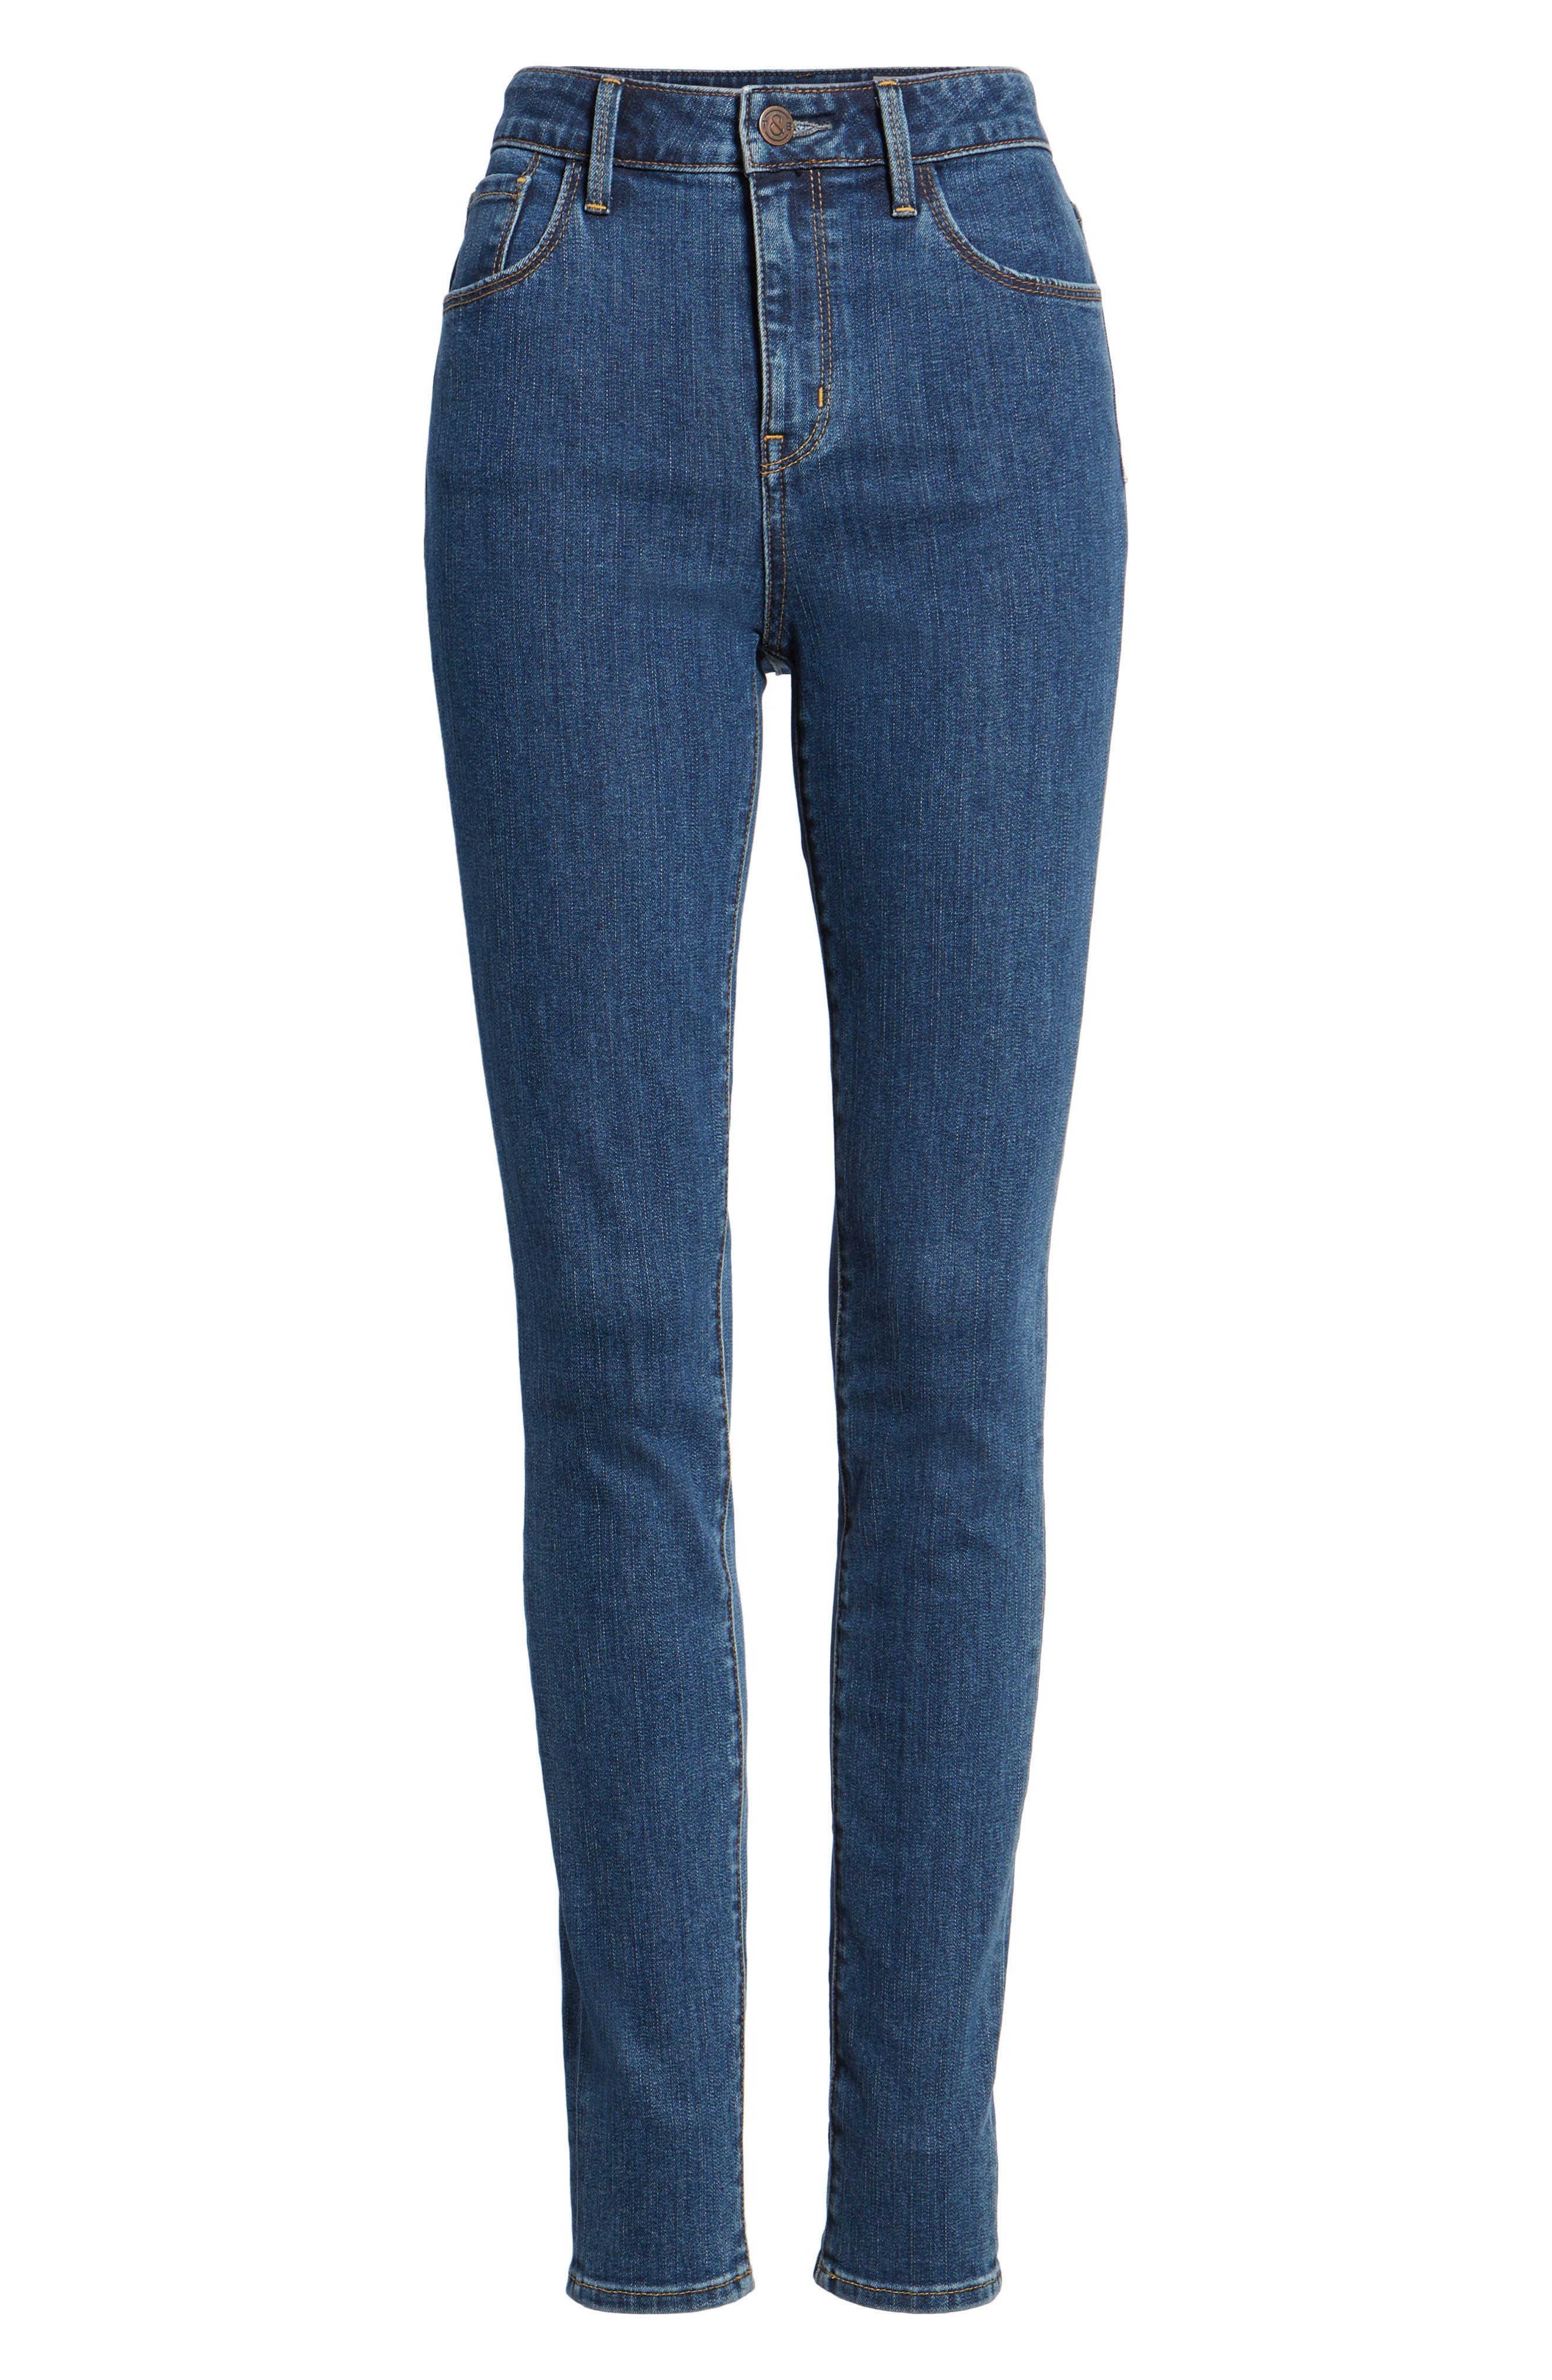 Charity High Waist Skinny Jeans,                             Alternate thumbnail 7, color,